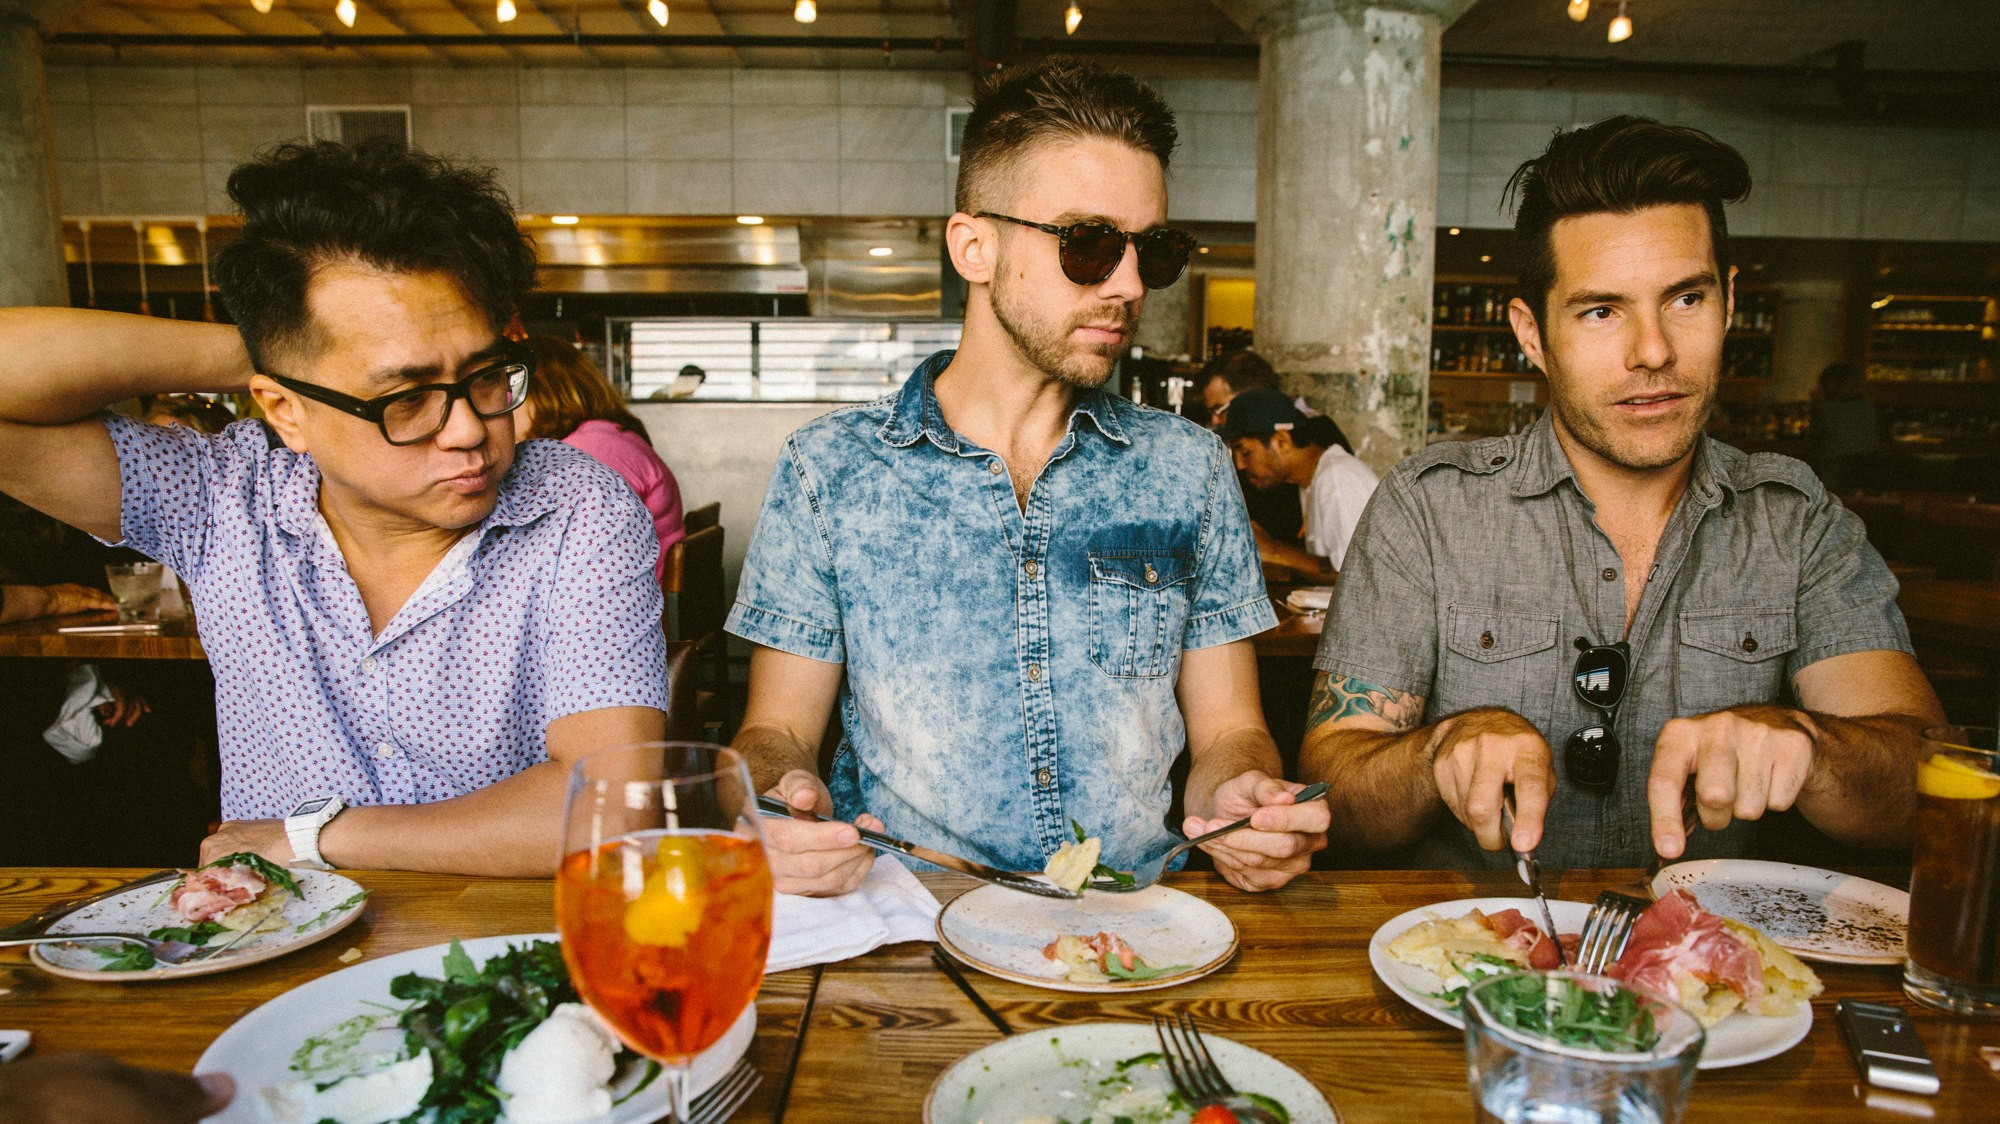 Saint Motel Talk Jokes, Philosophy, and That One Time They Ate Horse Meat